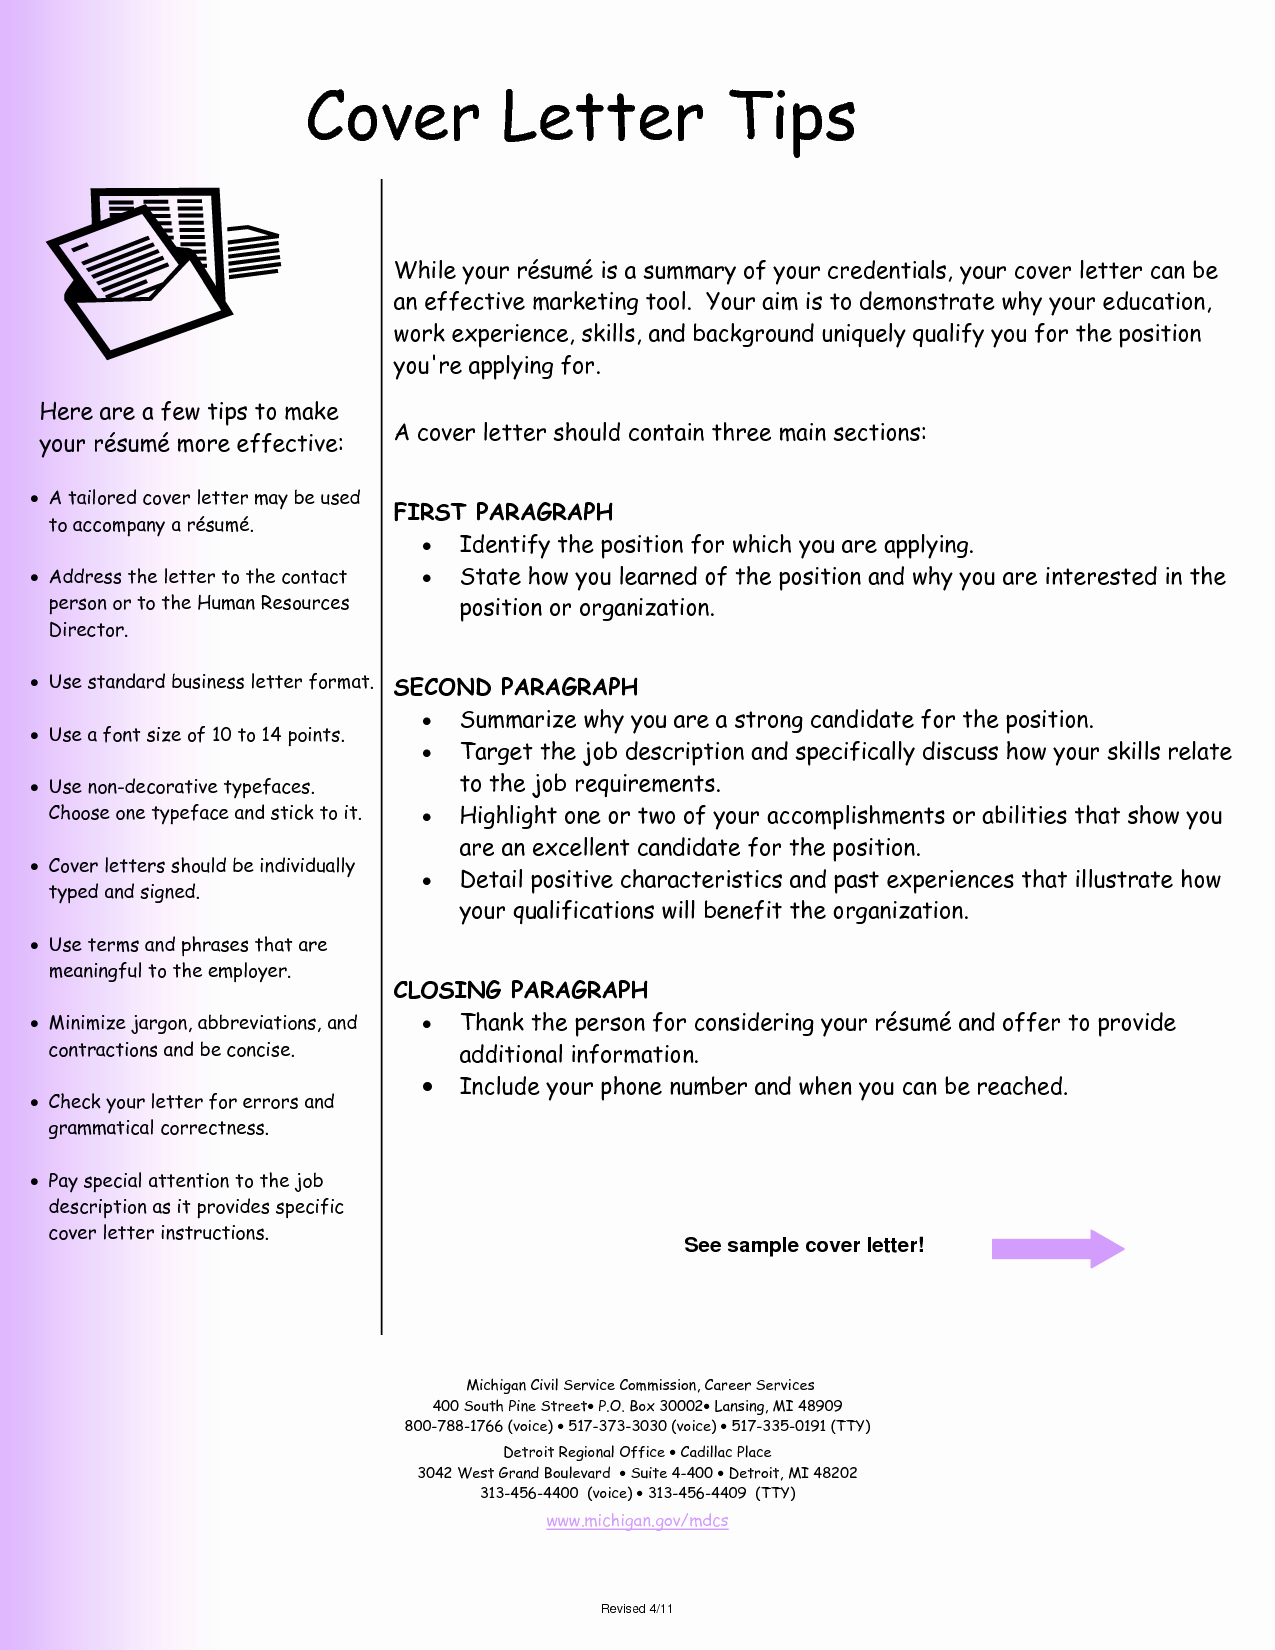 Resumes and Cover Letter Samples Fresh Resume Cover Letter Examples Resume Cv